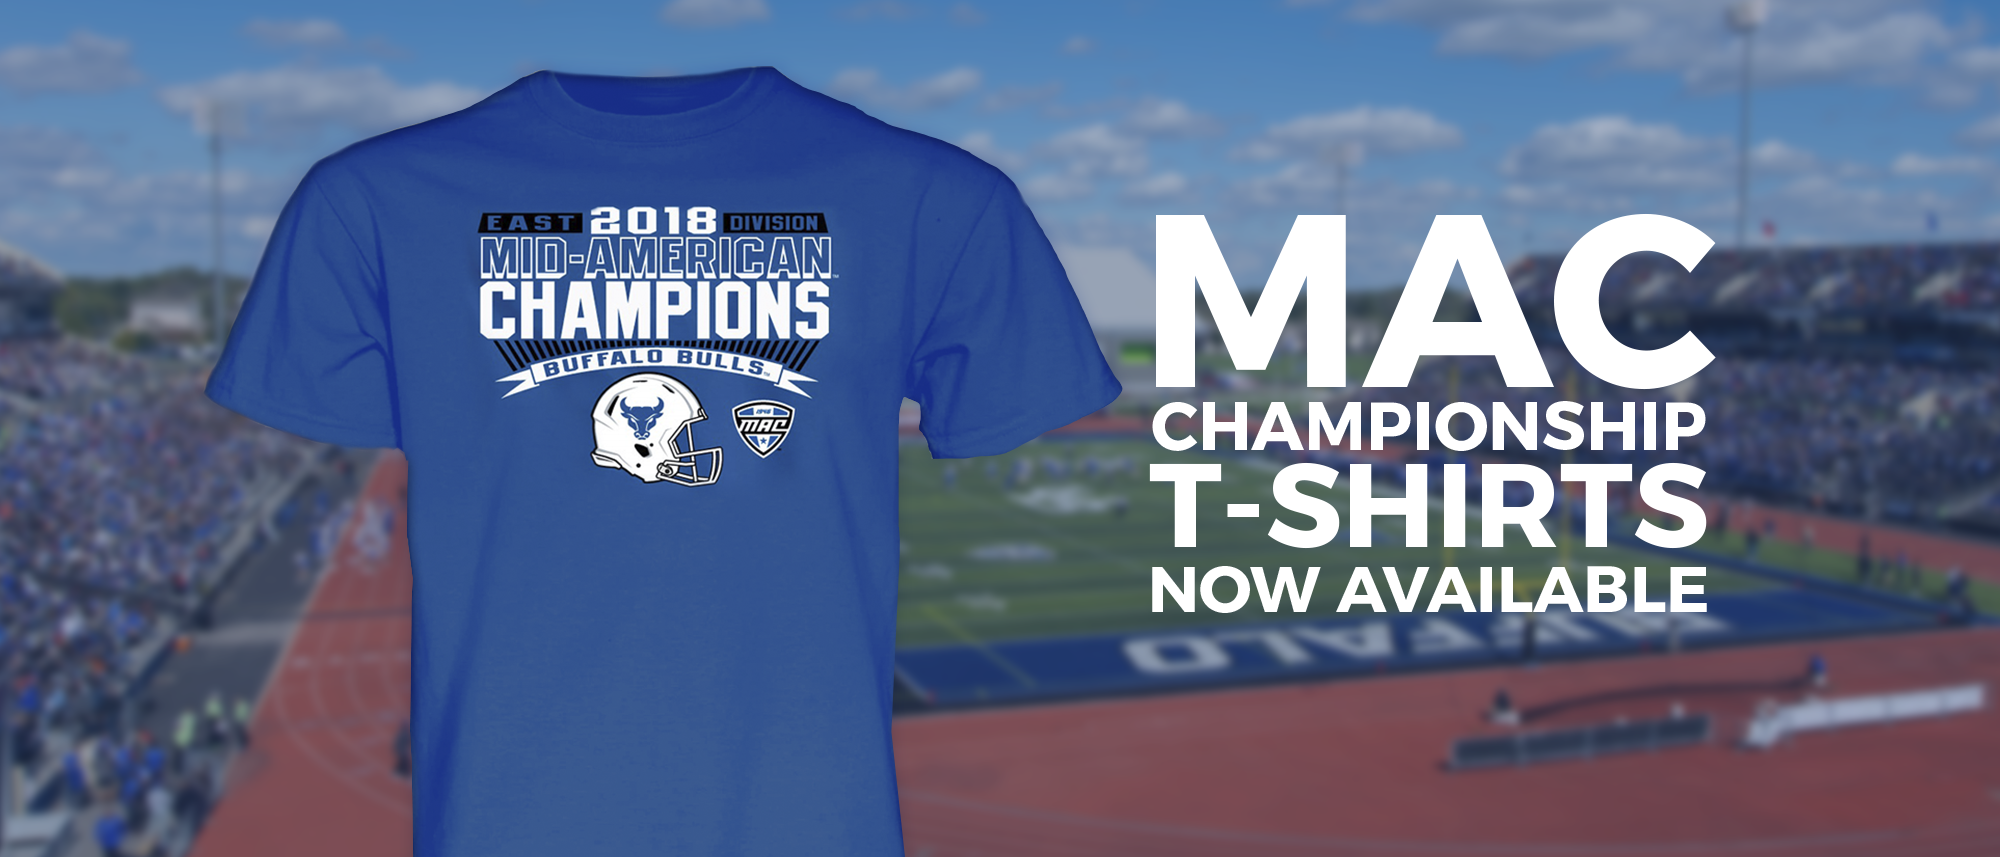 MAC Championship t-shirts now available